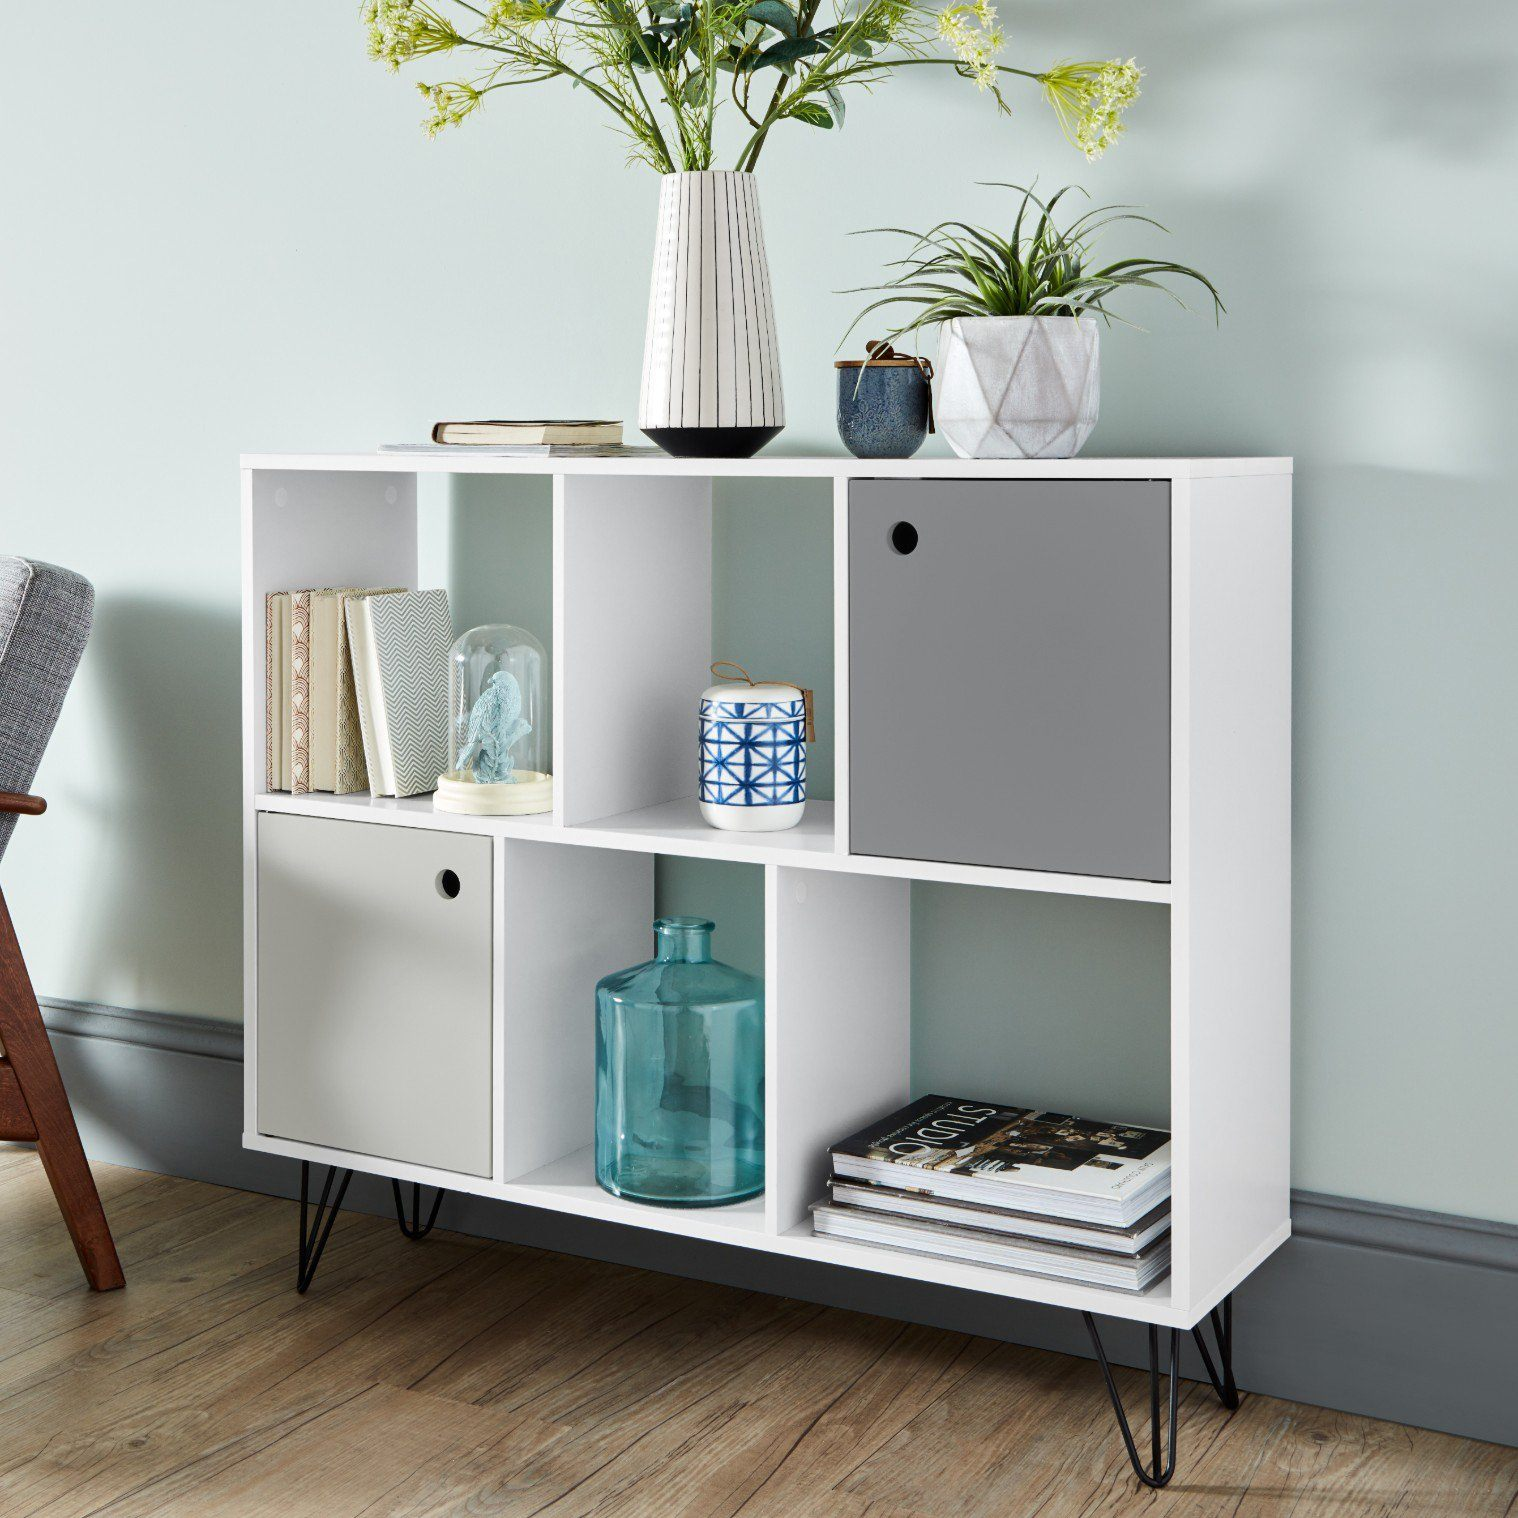 Anderson White Mid Century Modern storage unit with grey cupboards - Laura James